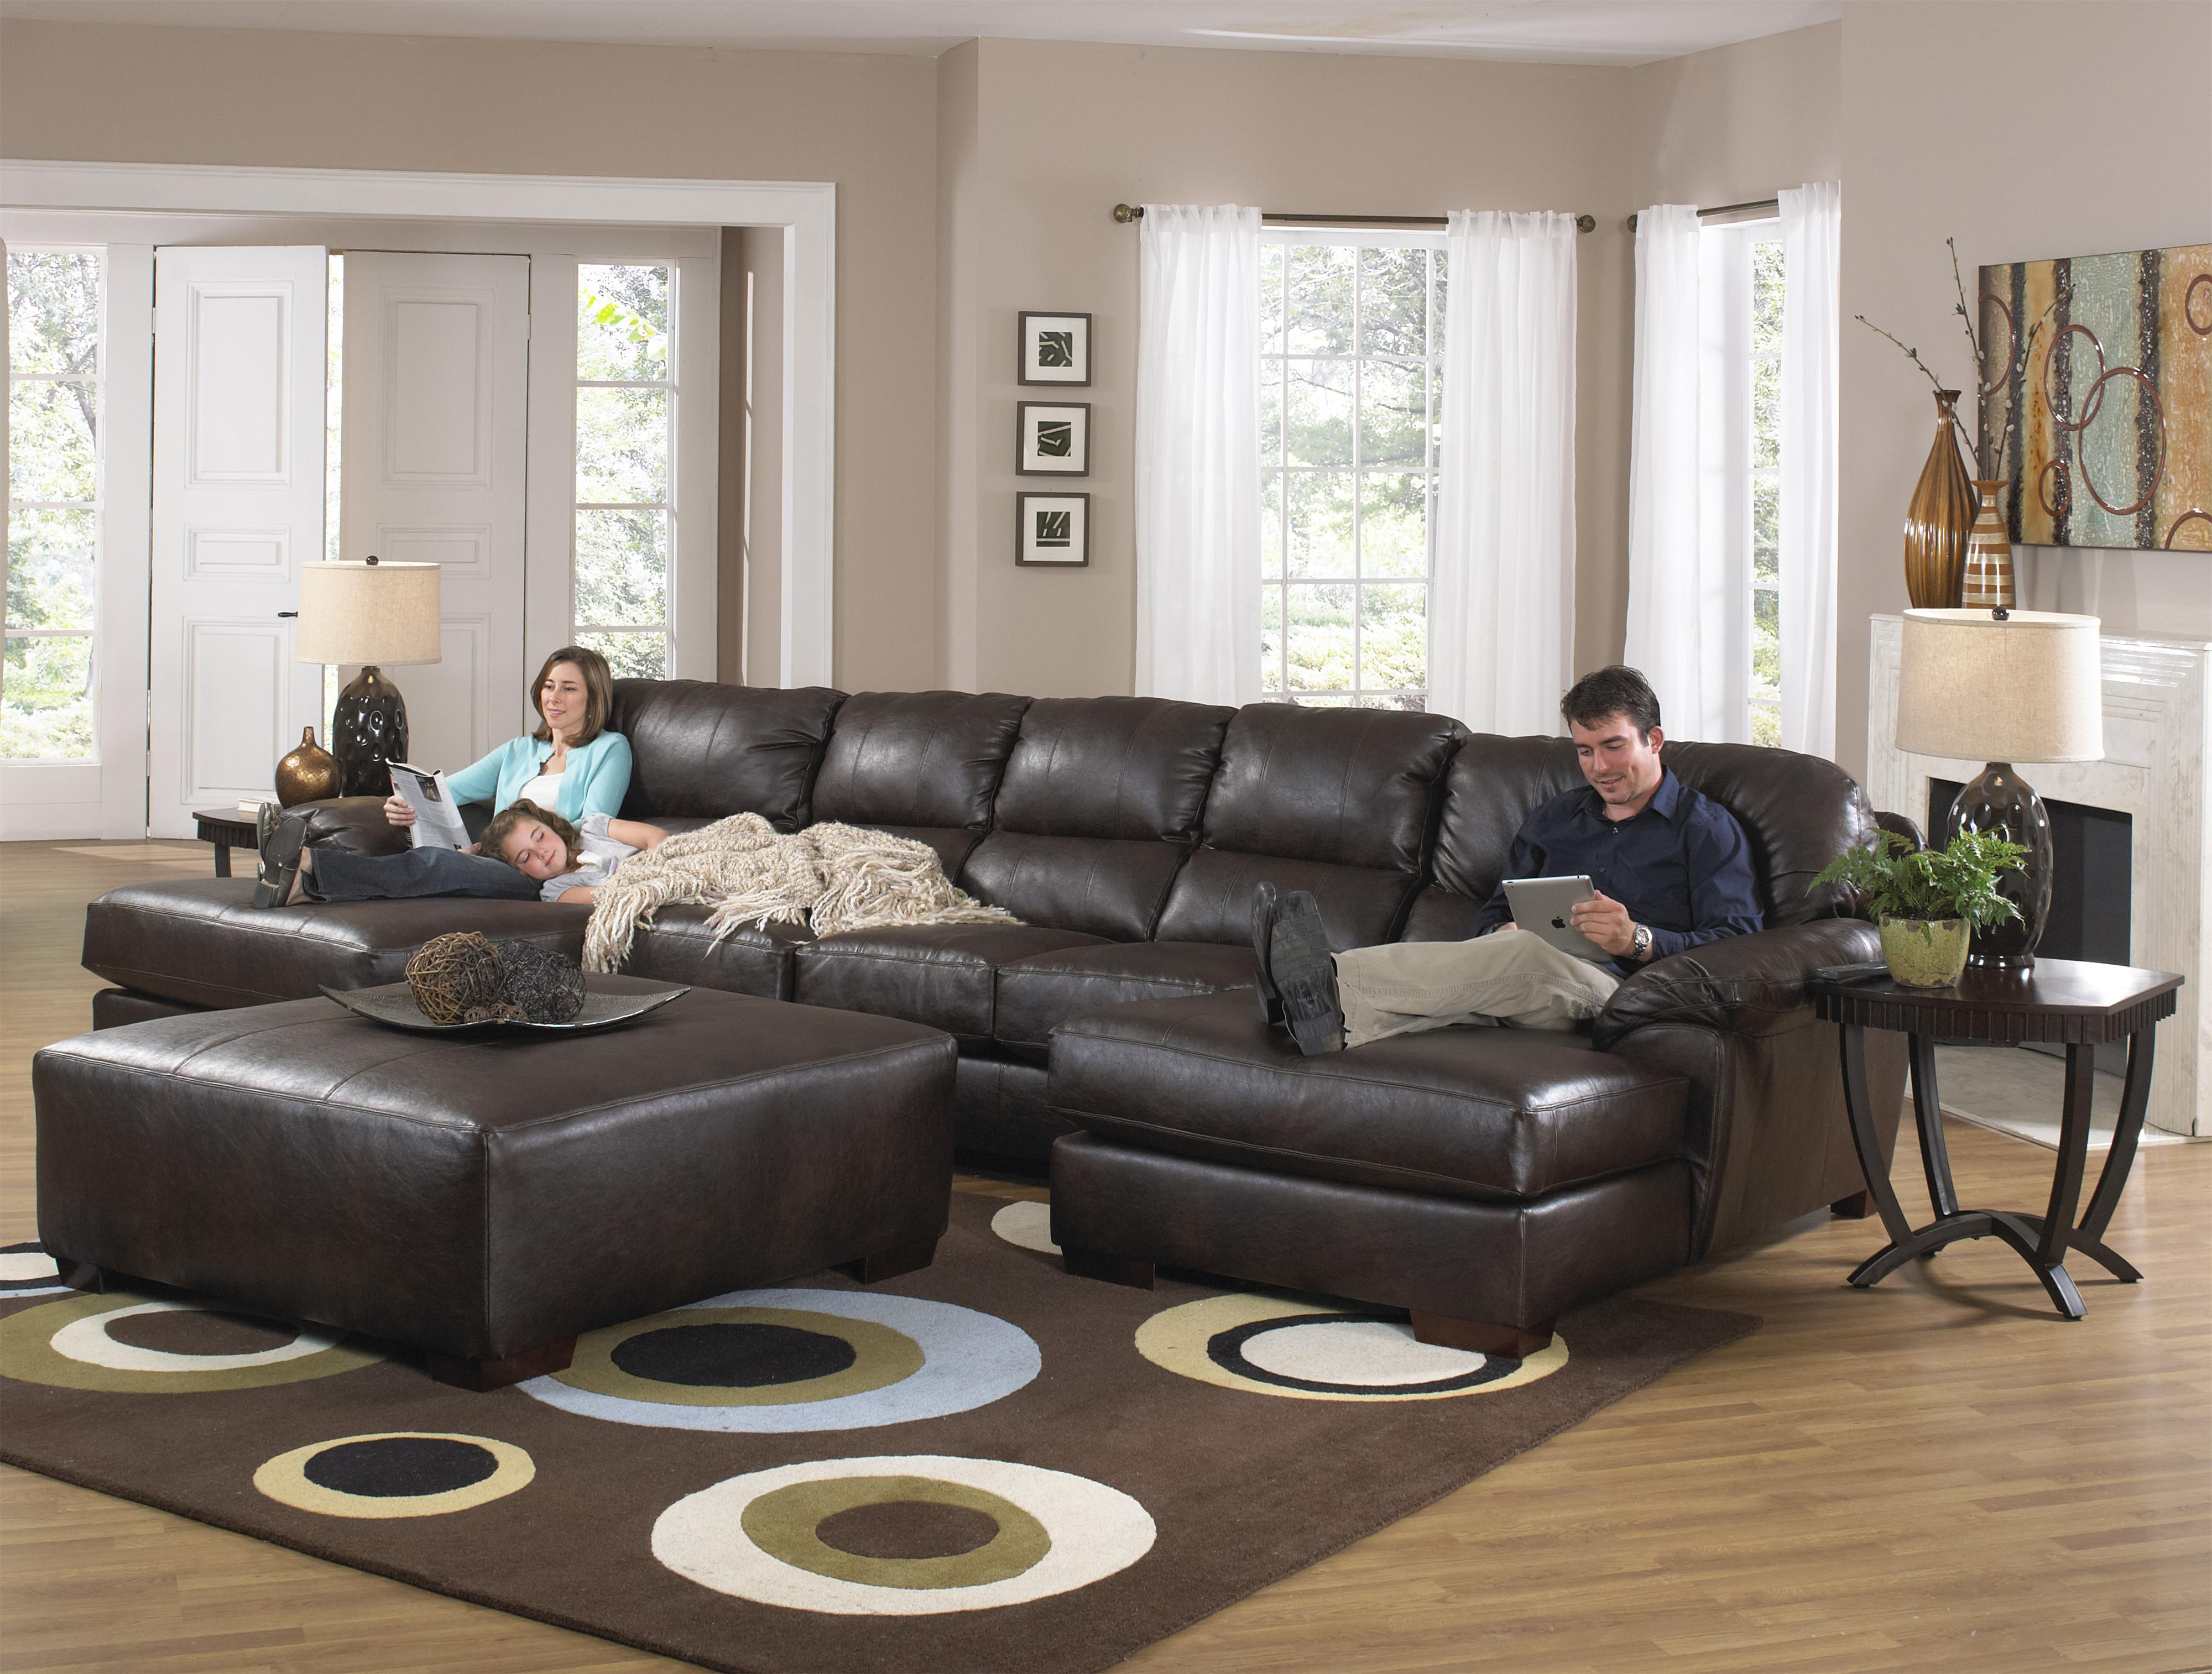 lawson 3 piece sectional